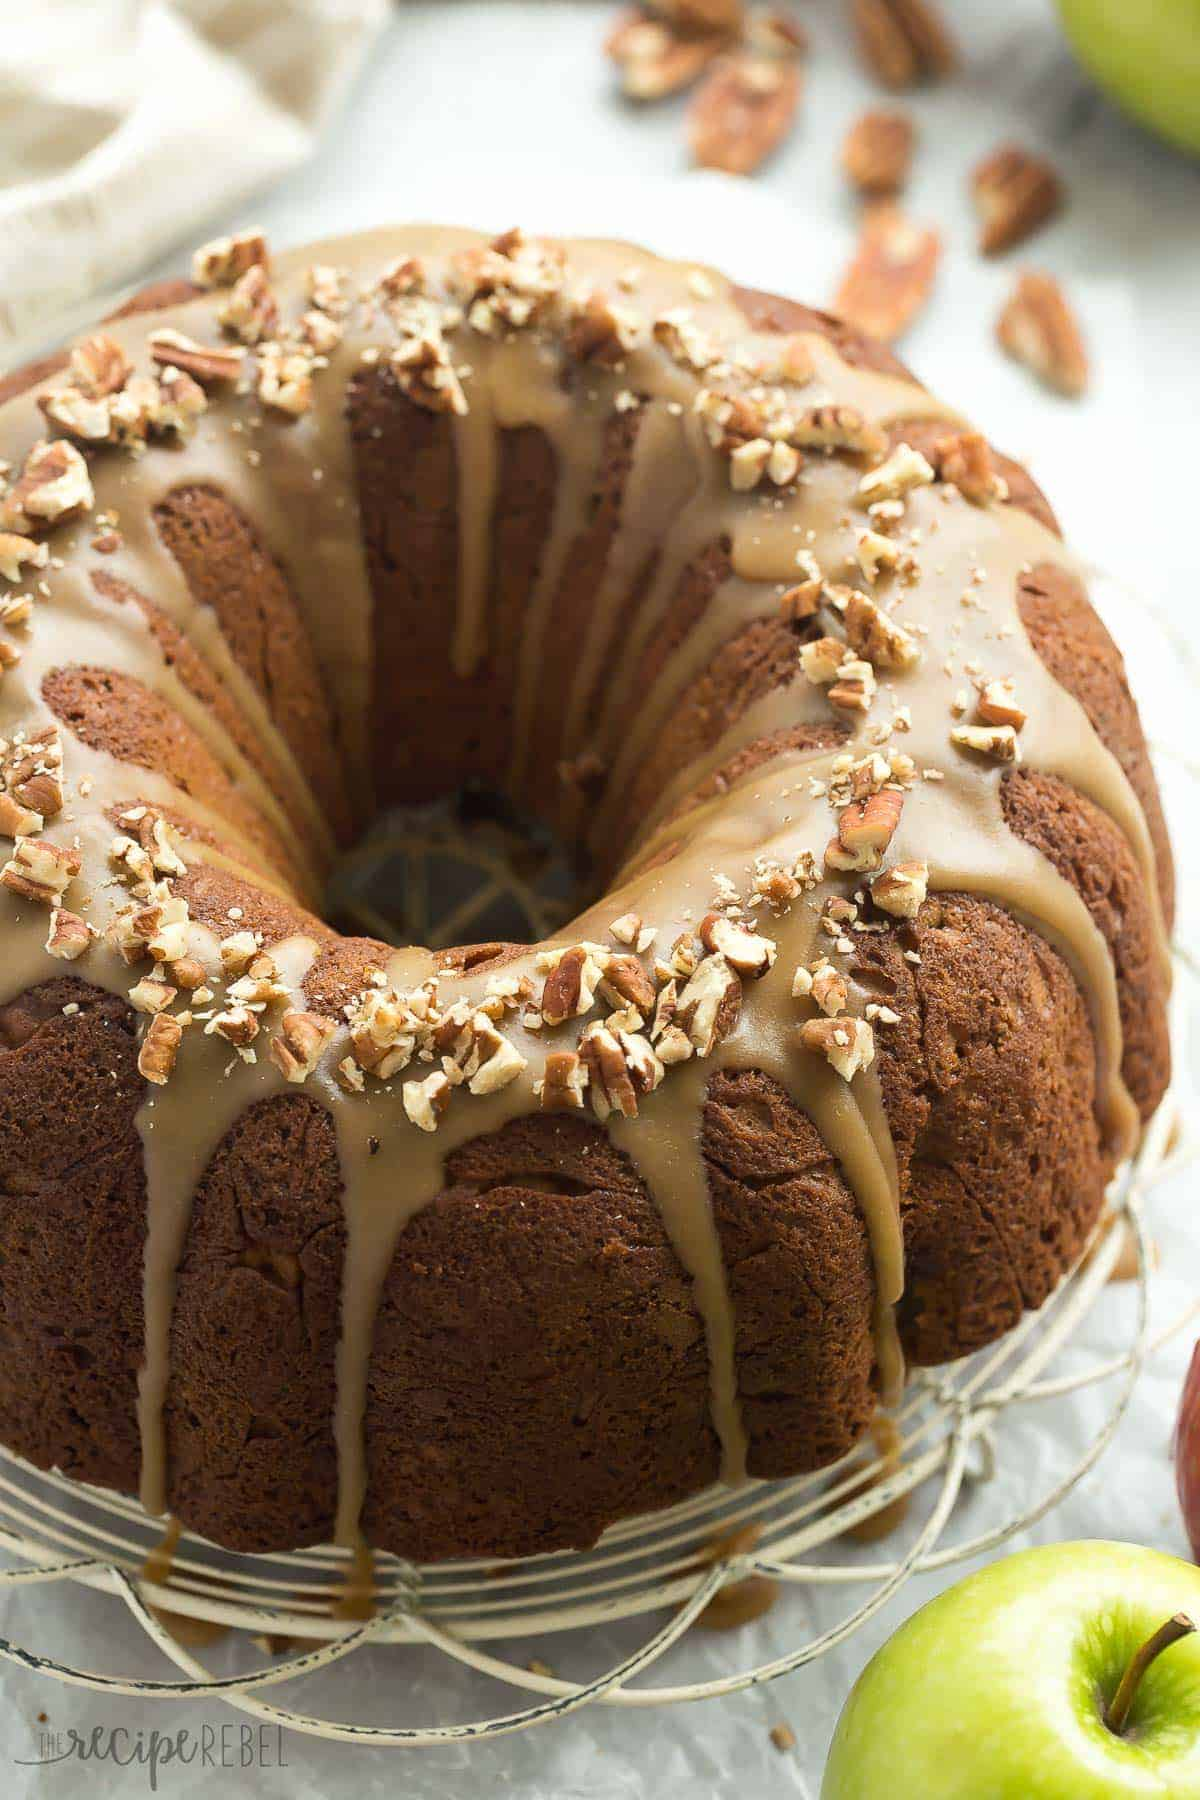 This Praline-Glazed Apple Bundt Cake is SO moist and loaded with apples and pecans, then smothered in a praline glaze -- a great fall dessert, perfect for Thanksgiving or Christmas!